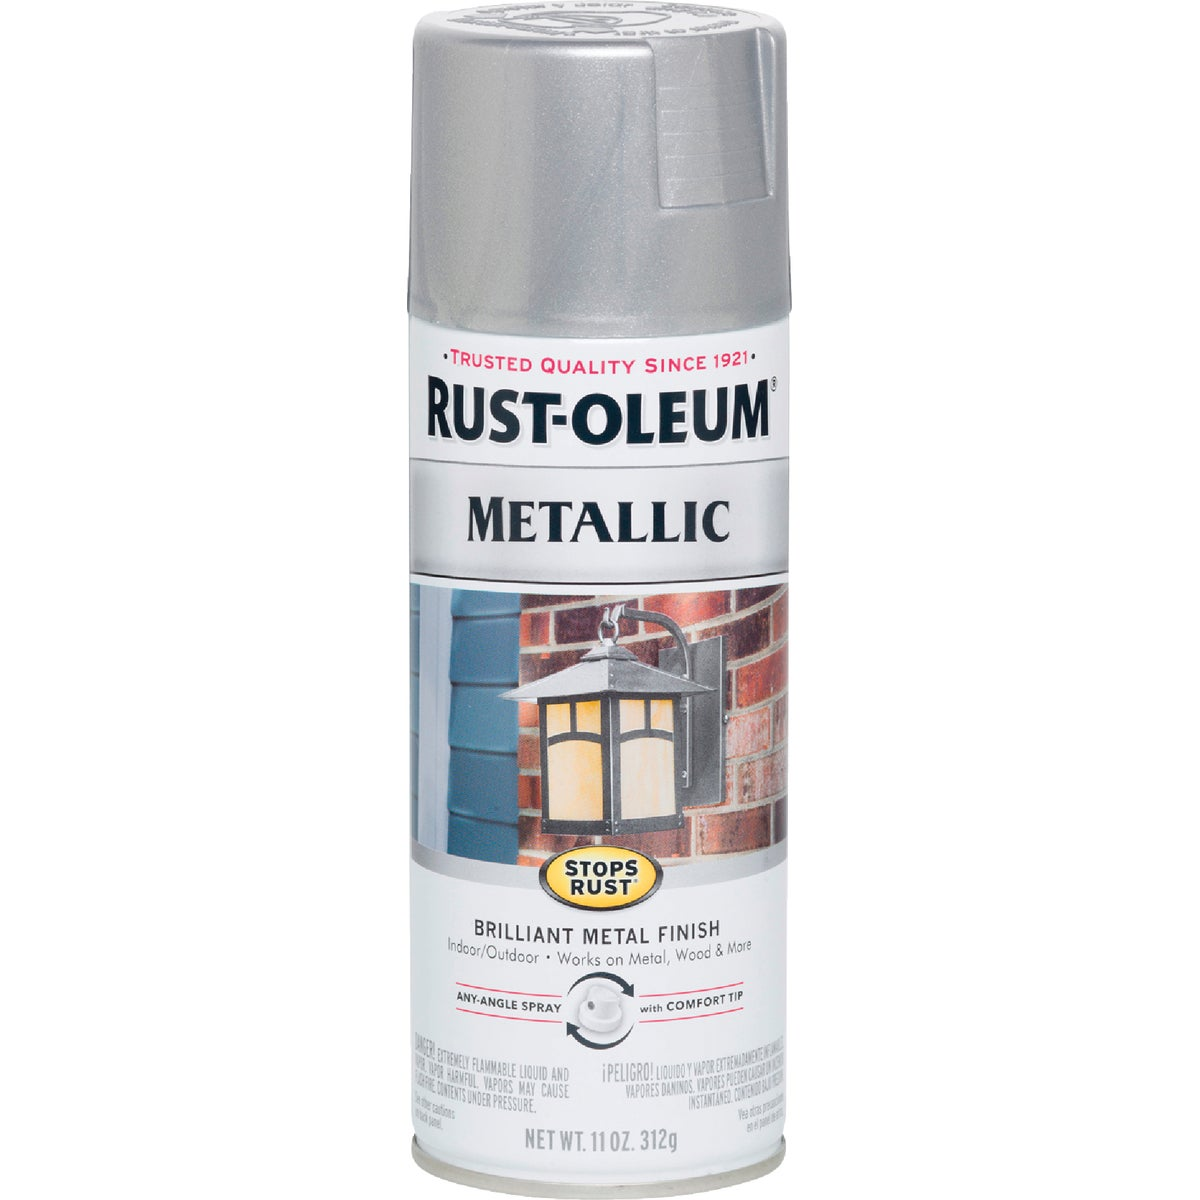 SILVER MTLC SPRAY PAINT - 7271-830 by Rustoleum